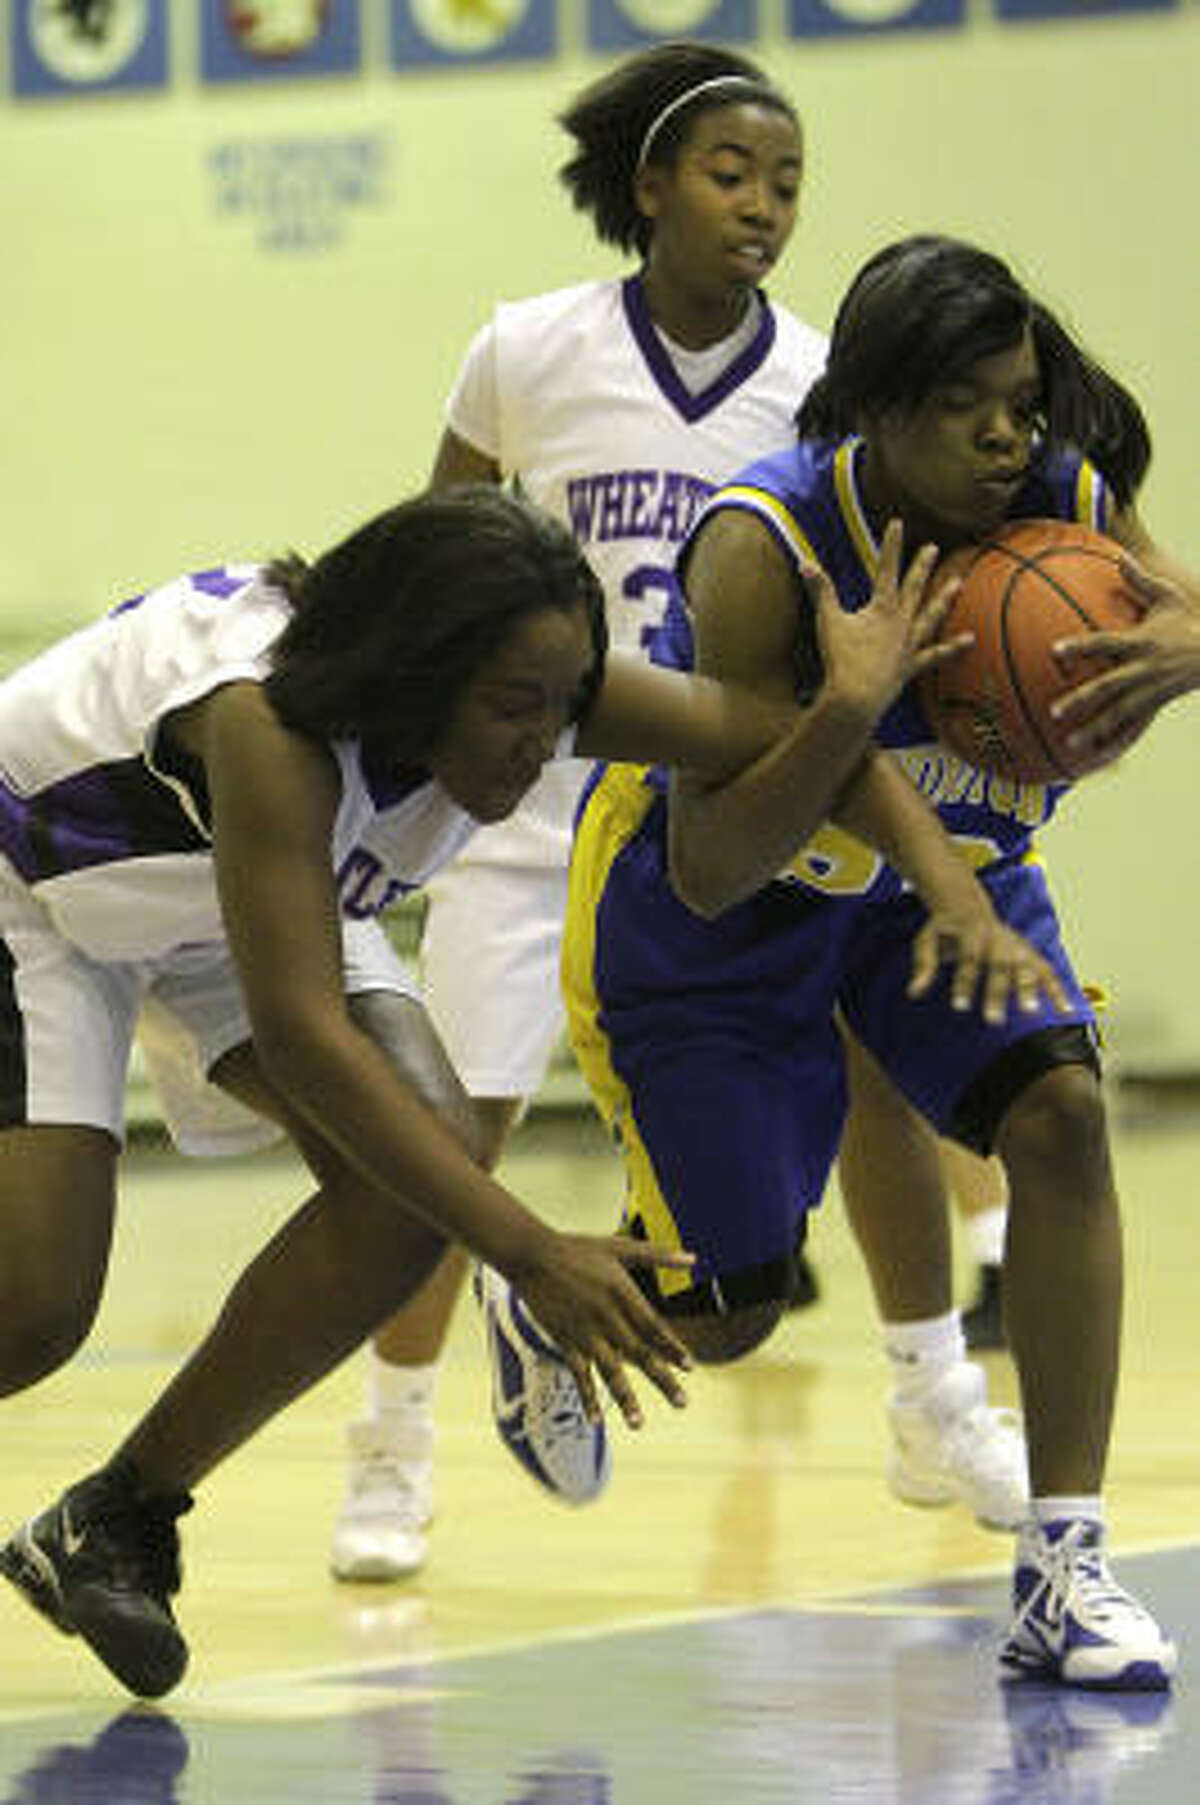 Washington's Candace Collins (23) battles for control of the ball with Wheatley's Jordoniee Wilson (32).